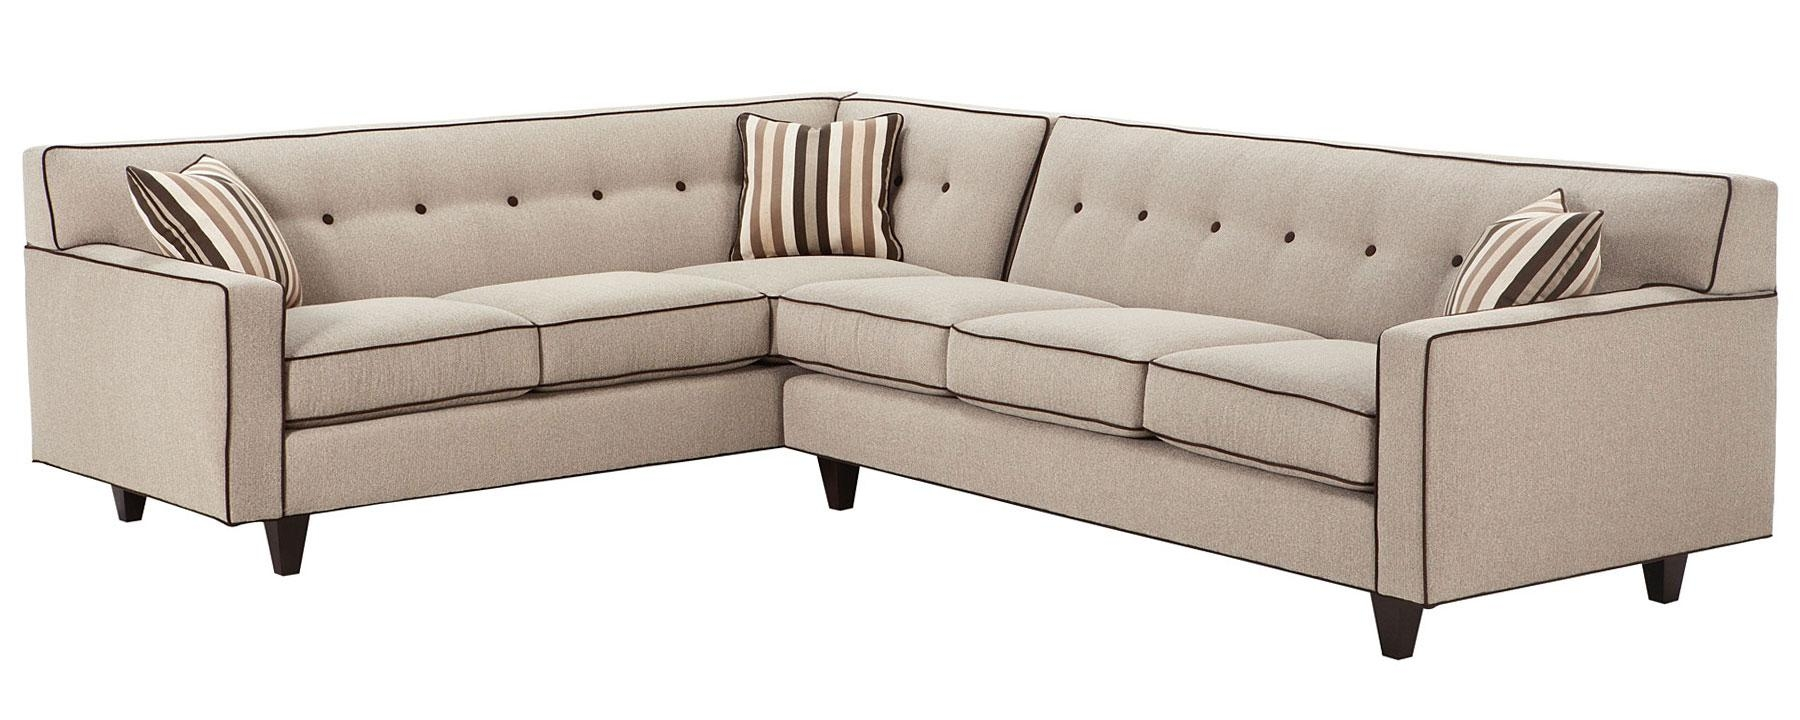 Mid Century Modern Sectional Sofa W/ Button Back | Club Furniture Intended For Mid Century Modern Sectional (Image 13 of 20)